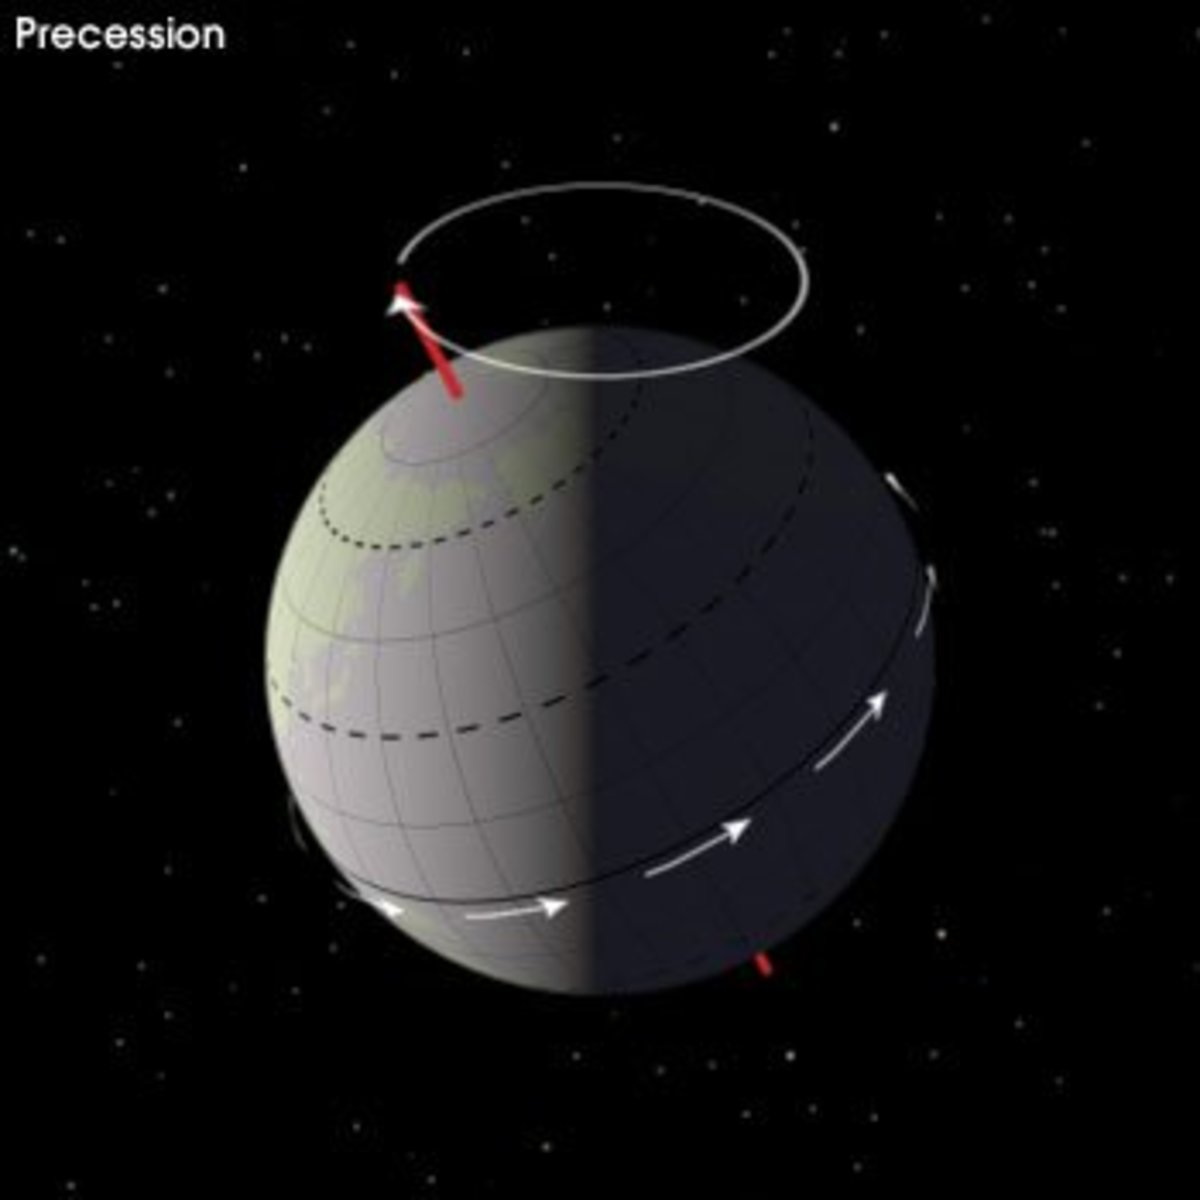 Precession of the Earth's axis. The white arrows around the equator show the daily rotation of the Earth. The circle around the North Pole shows the path the pole traces over 25,772 years.